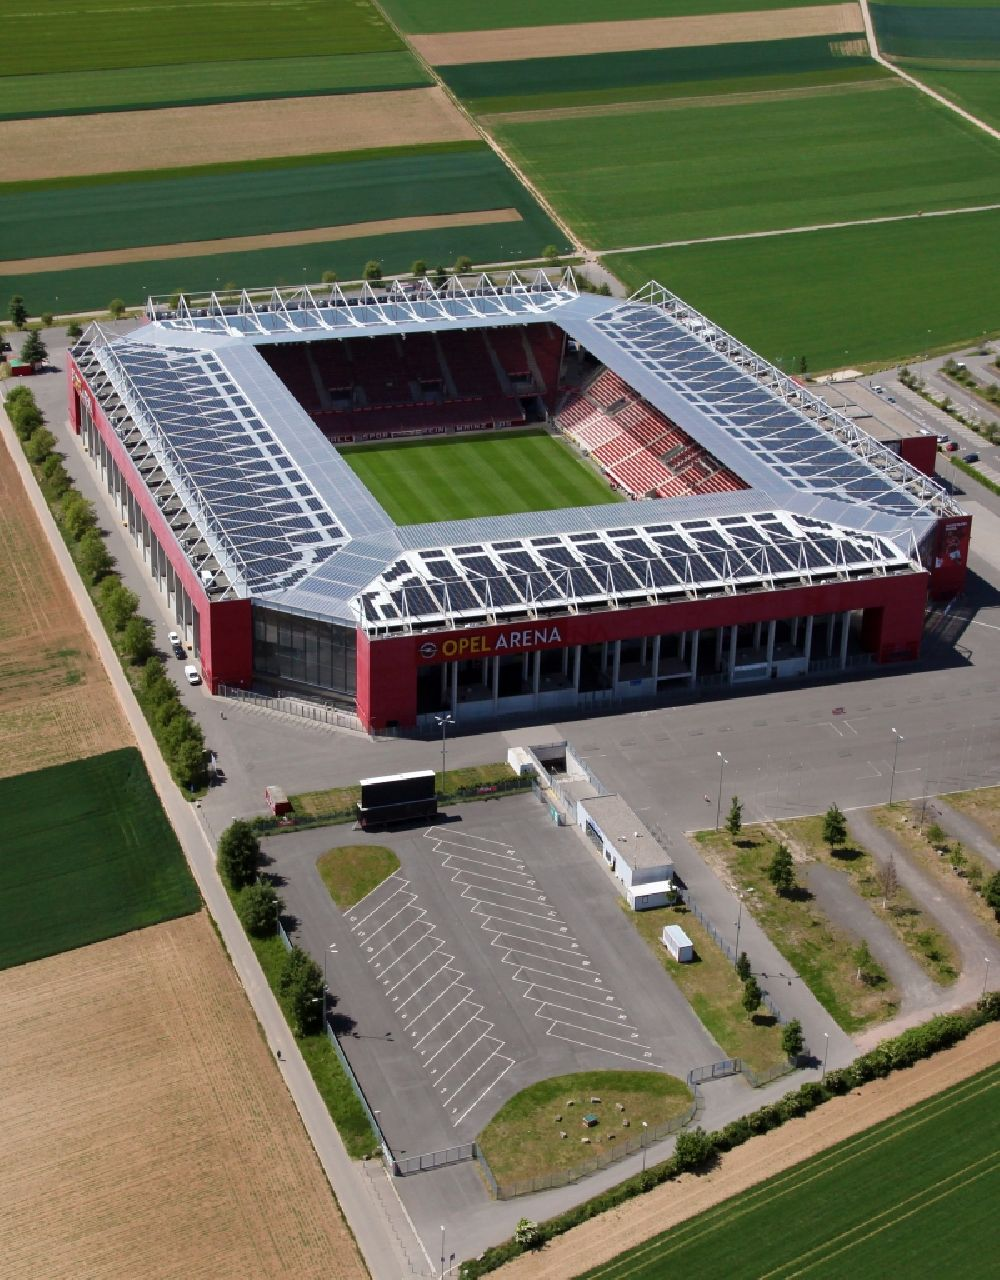 Aerial photograph Mainz - Sports facility grounds of the arena of the stadium OPEL ARENA (former name Coface Arena) on Eugen-Salomon-Strasse in Mainz in the state Rhineland-Palatinate, Germany